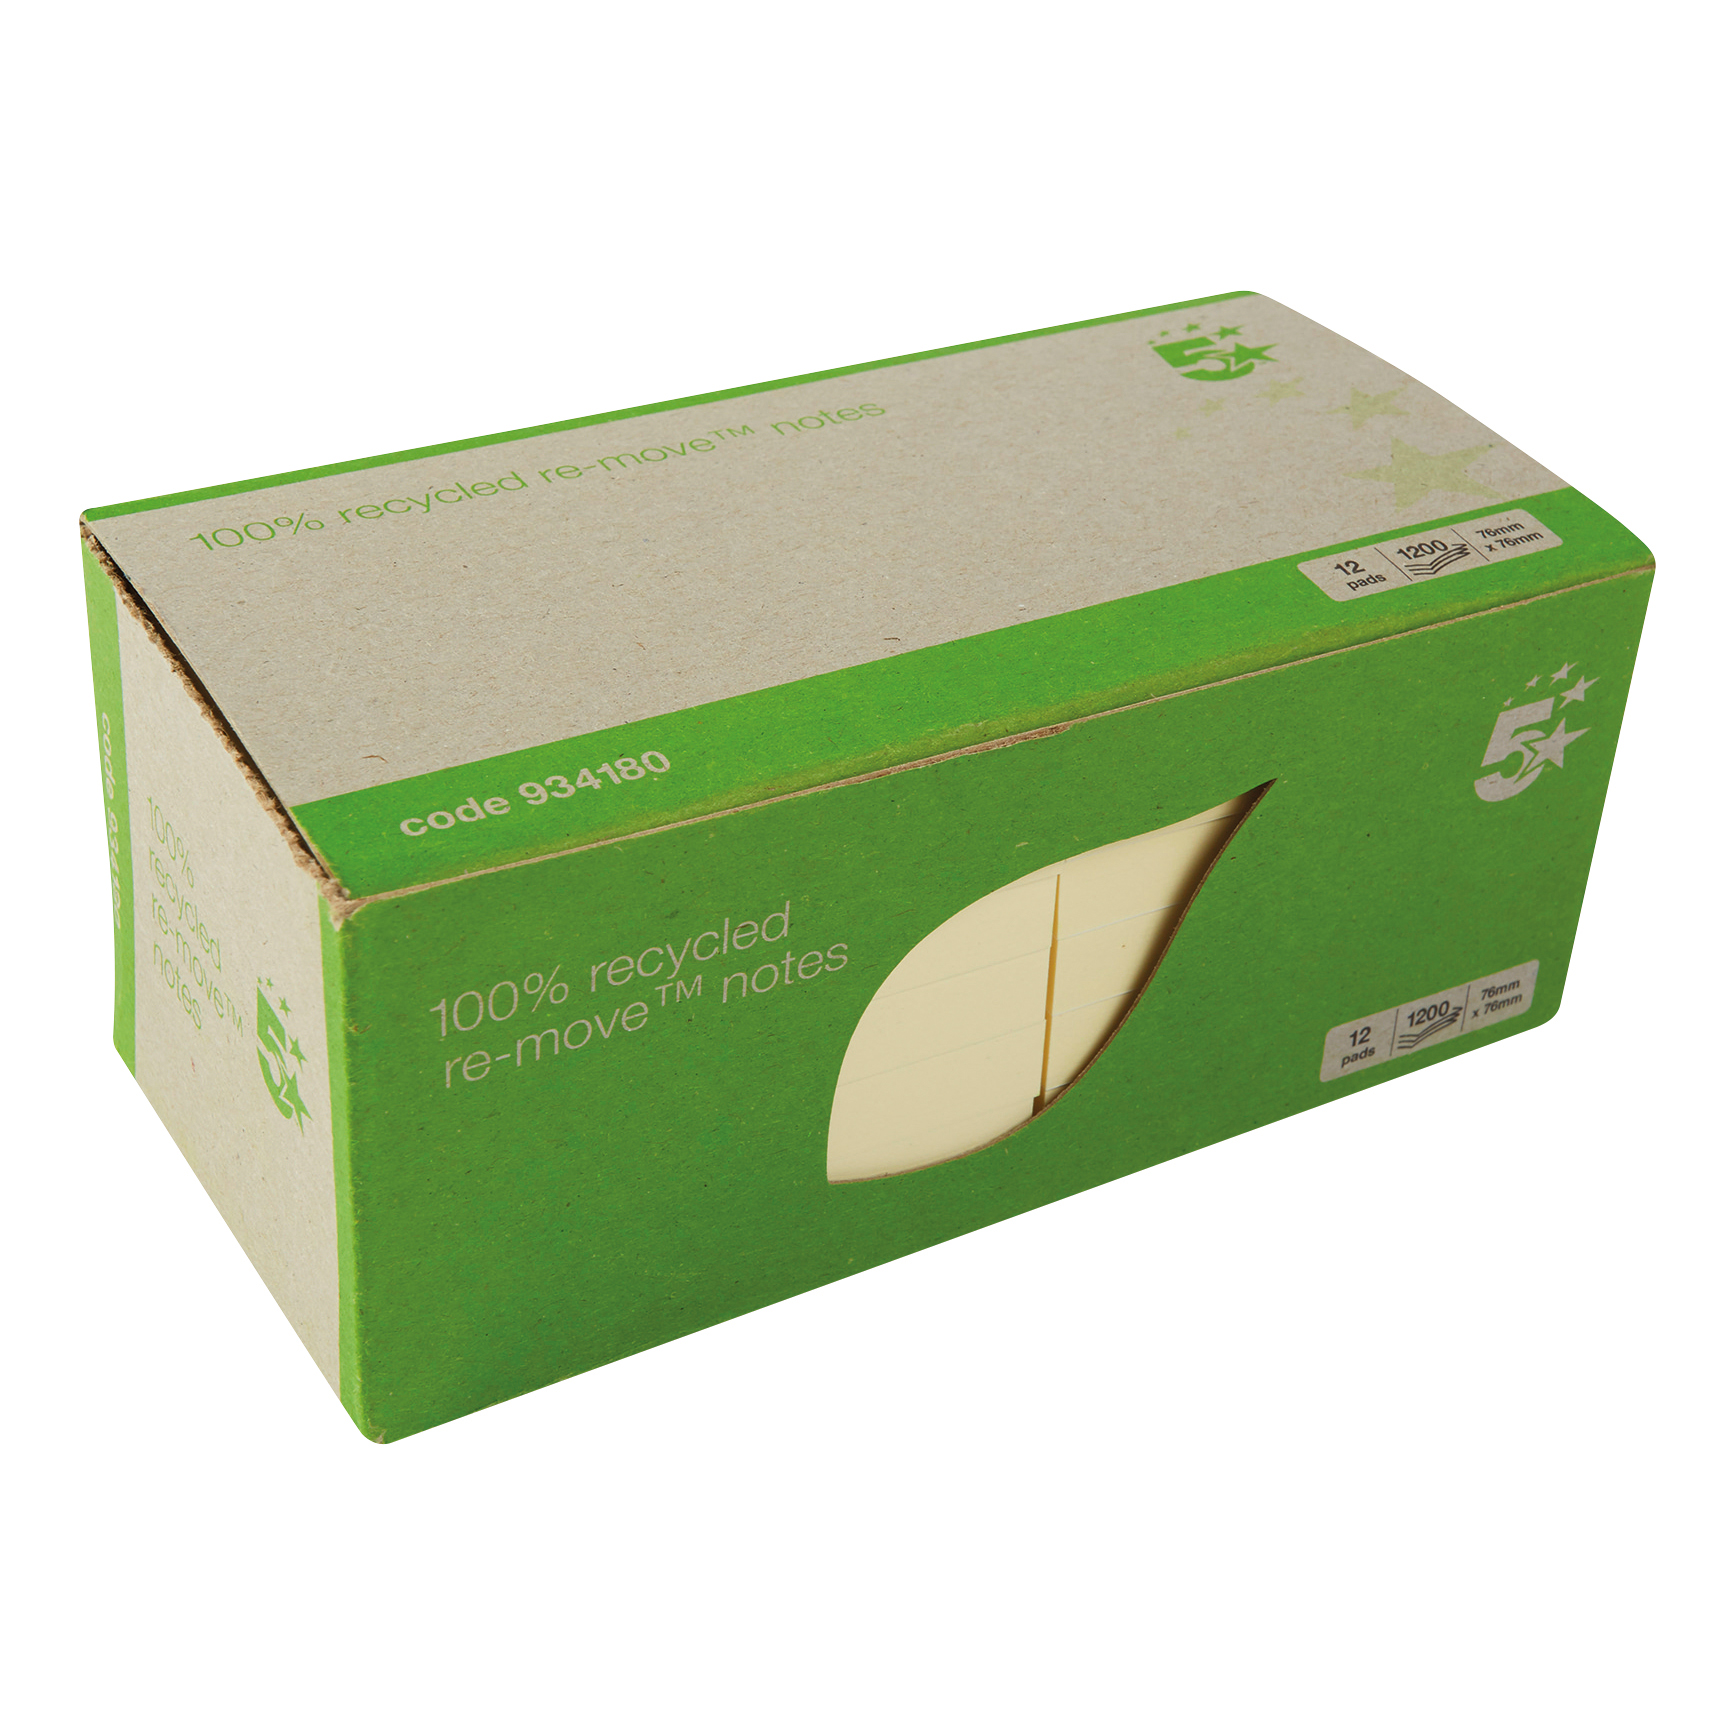 5 Star Eco Re-Move Recycled Notes Repositionable Pad of 100 Sheets 76x76mm Yellow Pack 12